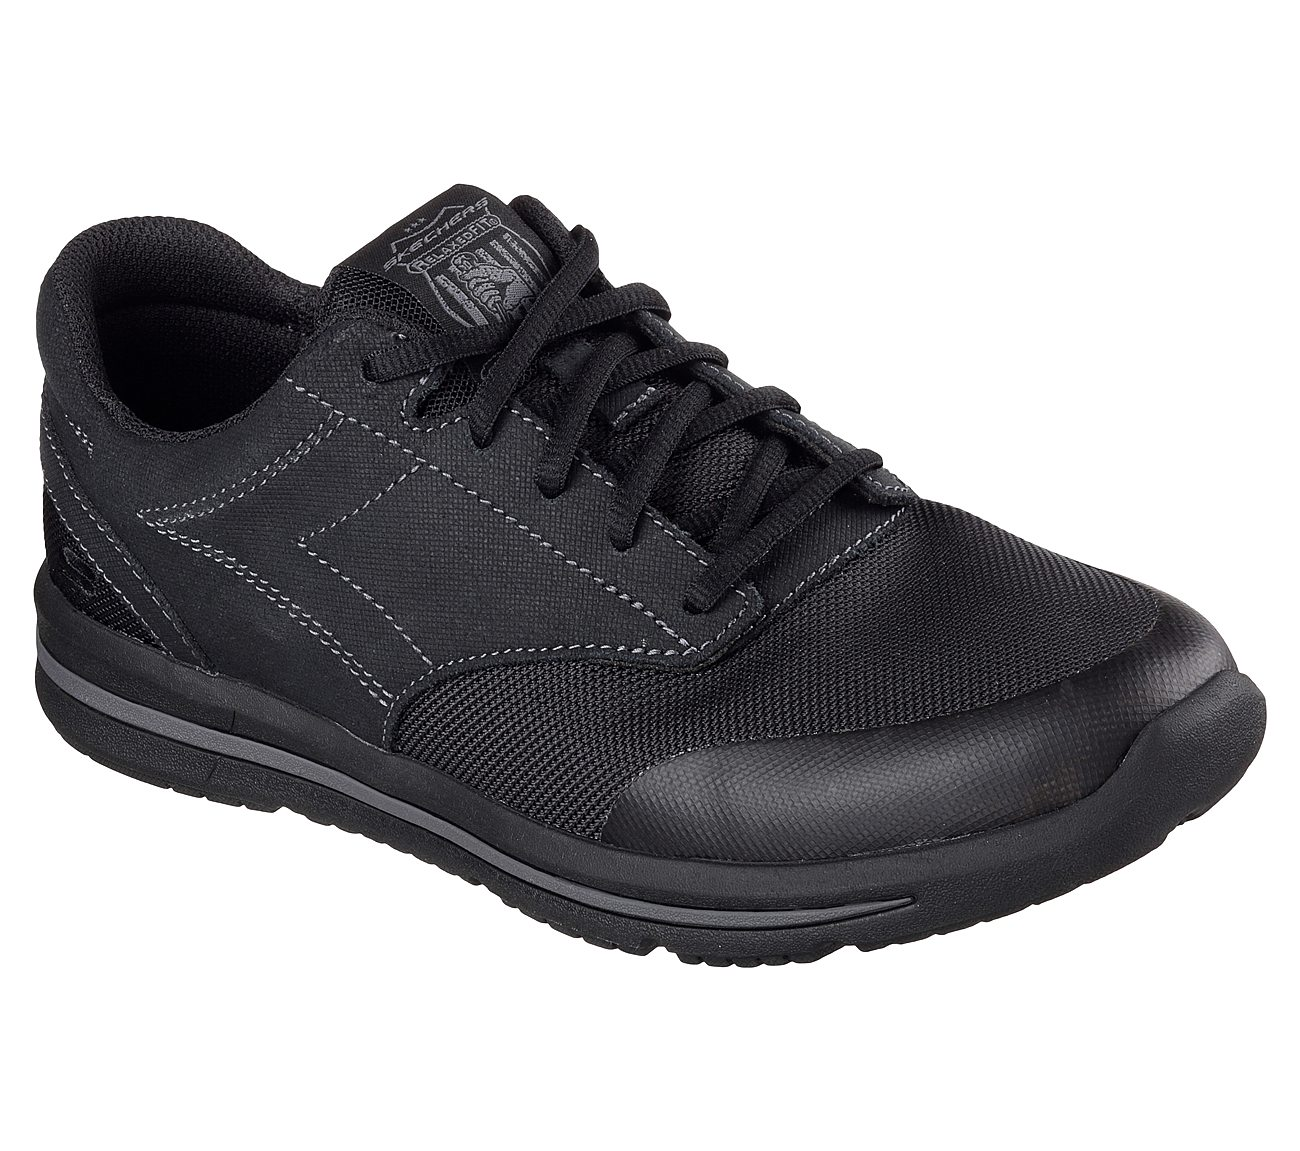 fe78707ef007 Buy SKECHERS Relaxed Fit  Doren - Westin Comfort Shoes Shoes only  46.00